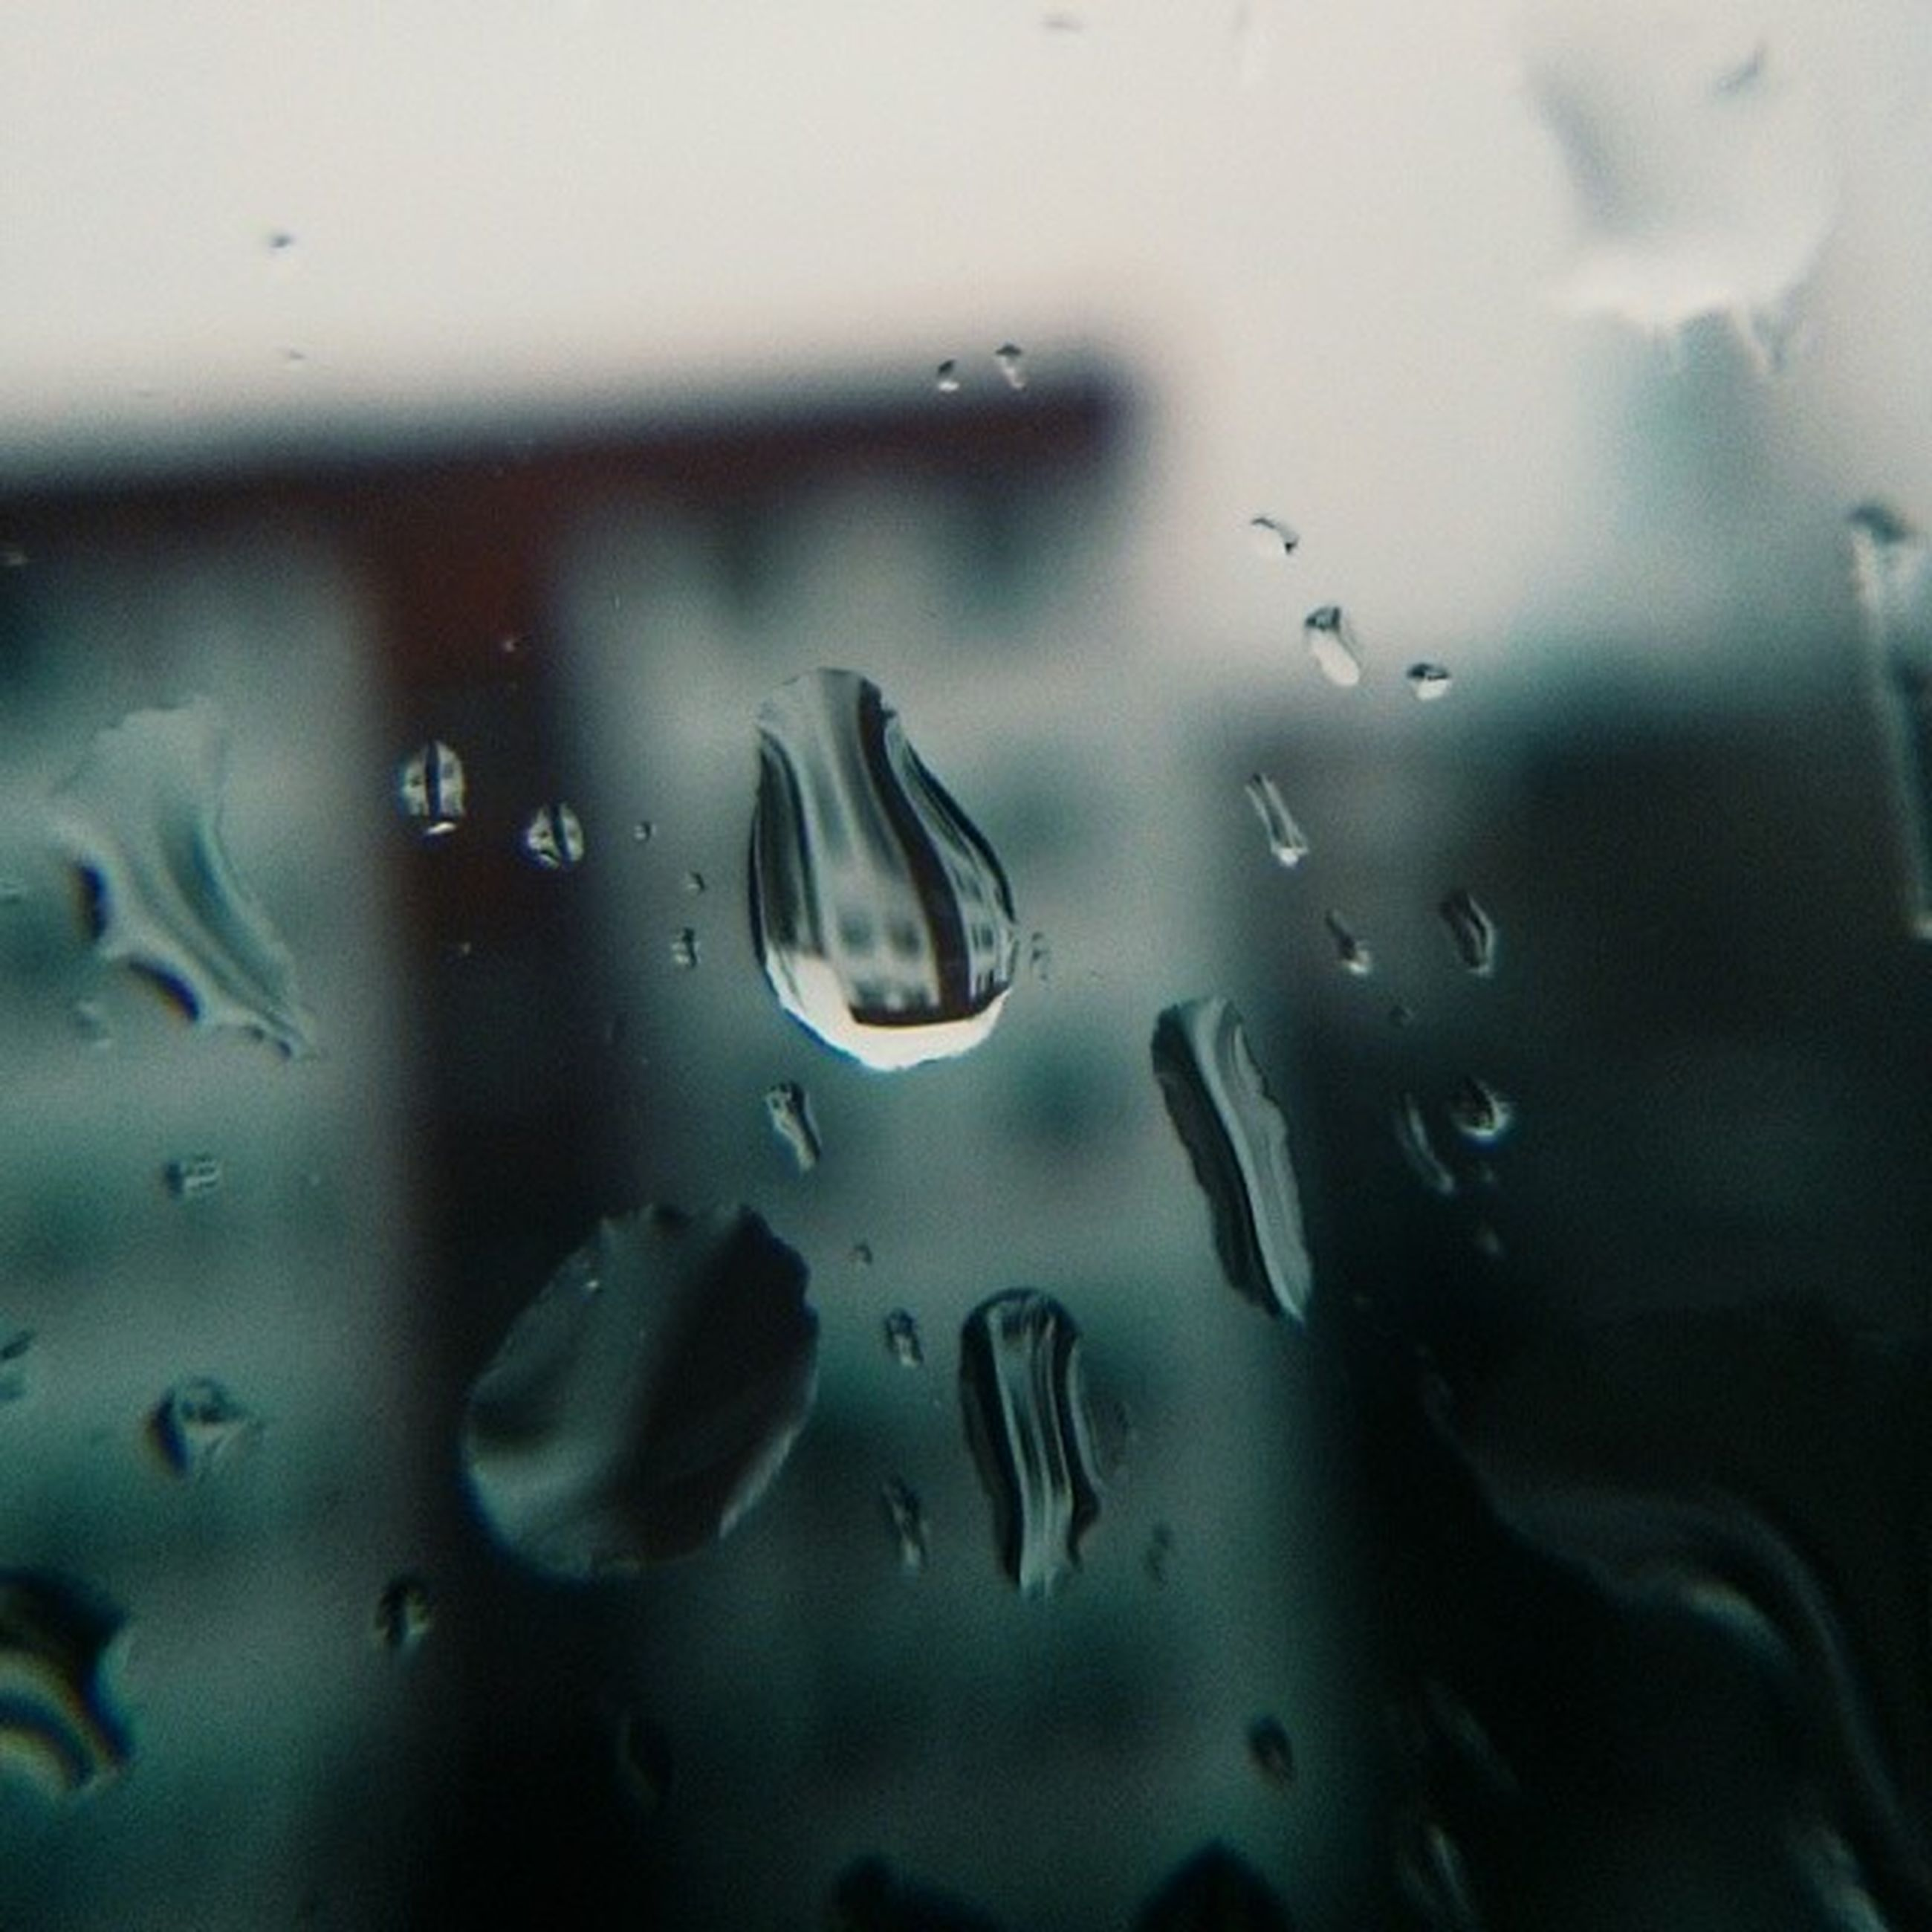 drop, water, wet, window, transparent, glass - material, rain, indoors, raindrop, full frame, weather, close-up, backgrounds, season, glass, water drop, droplet, focus on foreground, monsoon, no people